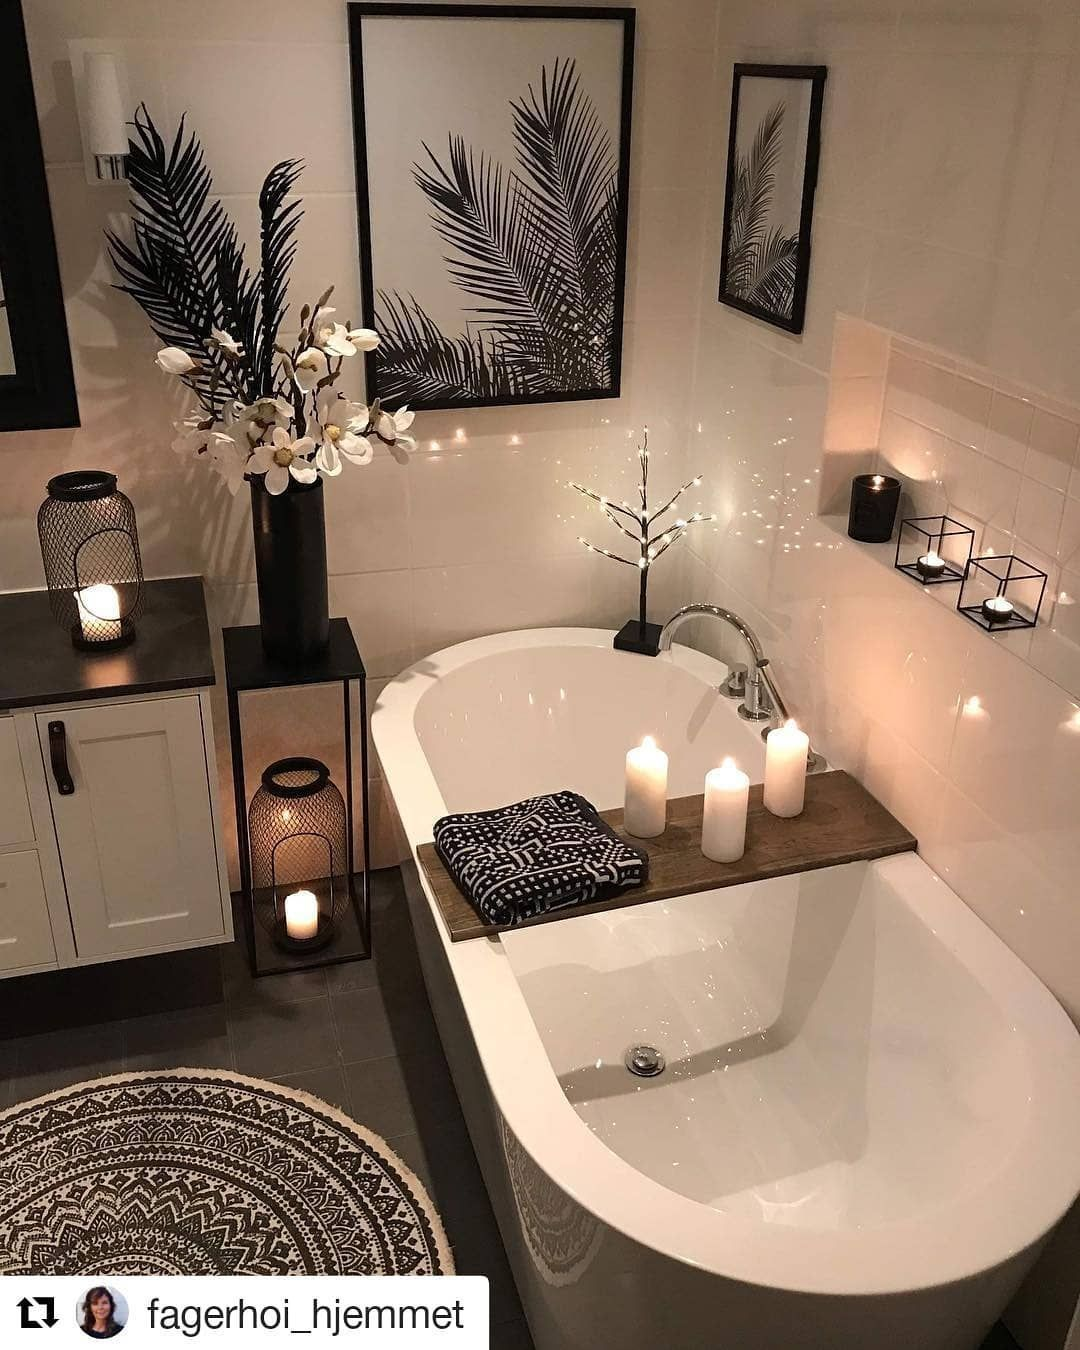 Bathroom Ideas: 10+ Simple And Futuristic Bathroom Remodeling Ideas